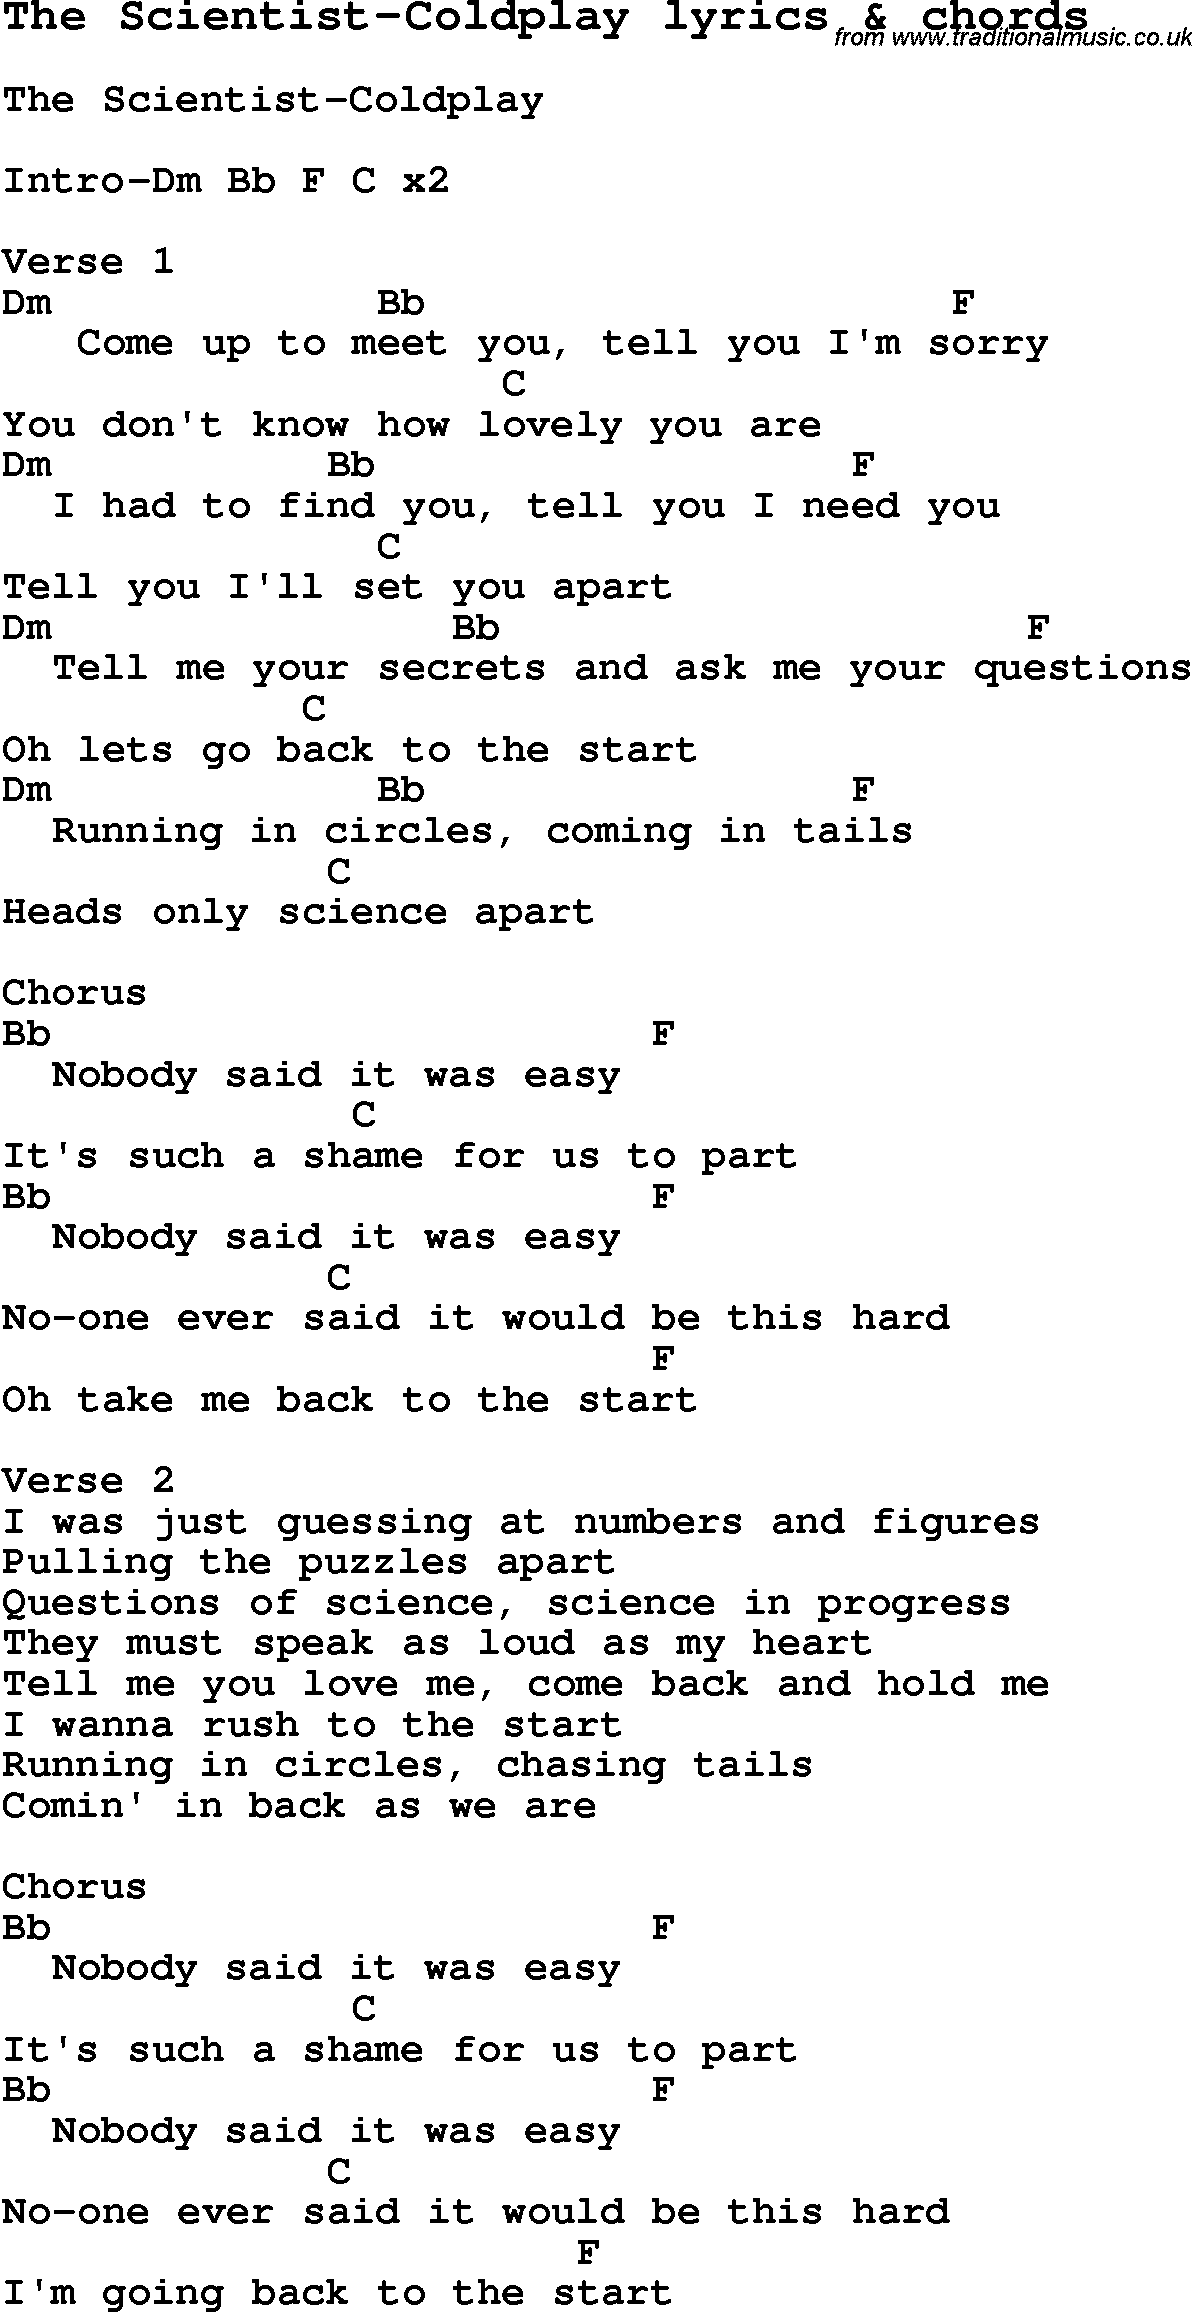 Love song lyrics forthe scientist coldplay with chords love song lyrics for the scientist coldplay with chords for ukulele guitar banjo hexwebz Images